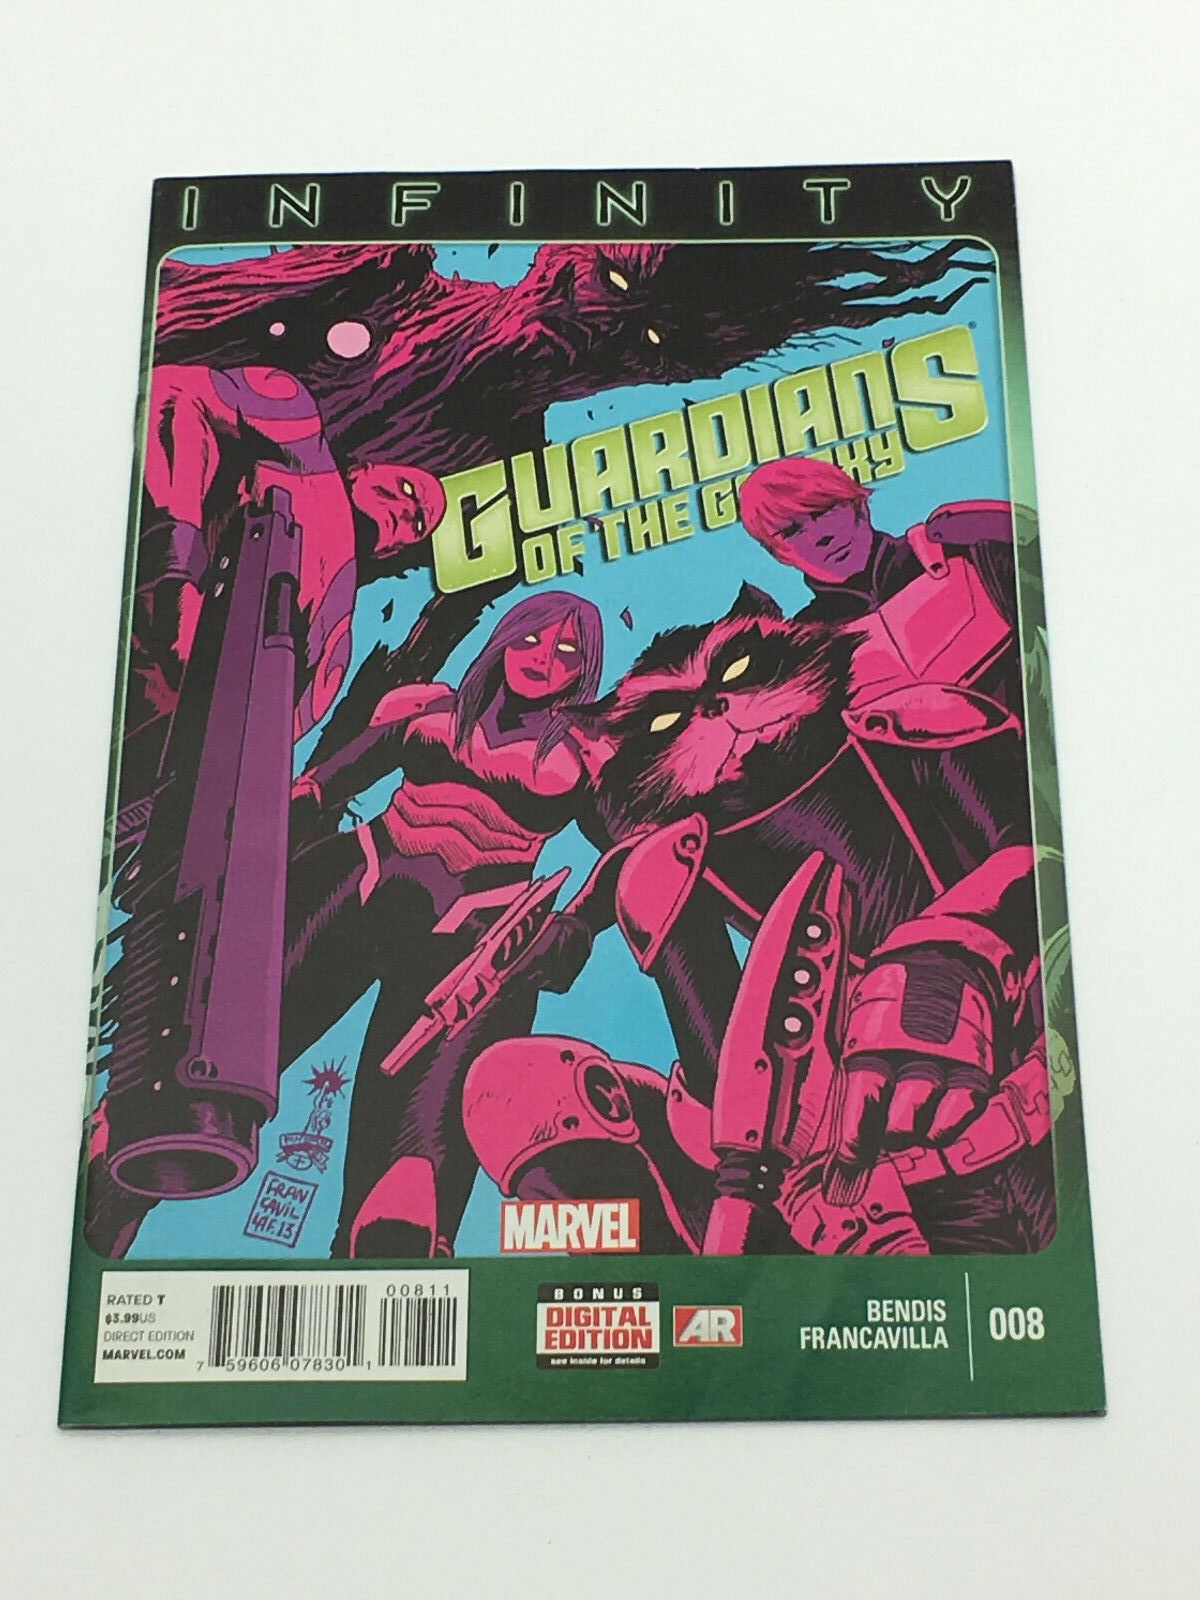 MARVEL Comics, Infinity, Guardians of the Galaxy #008 - Oct. 2013 FREE SHIPPING